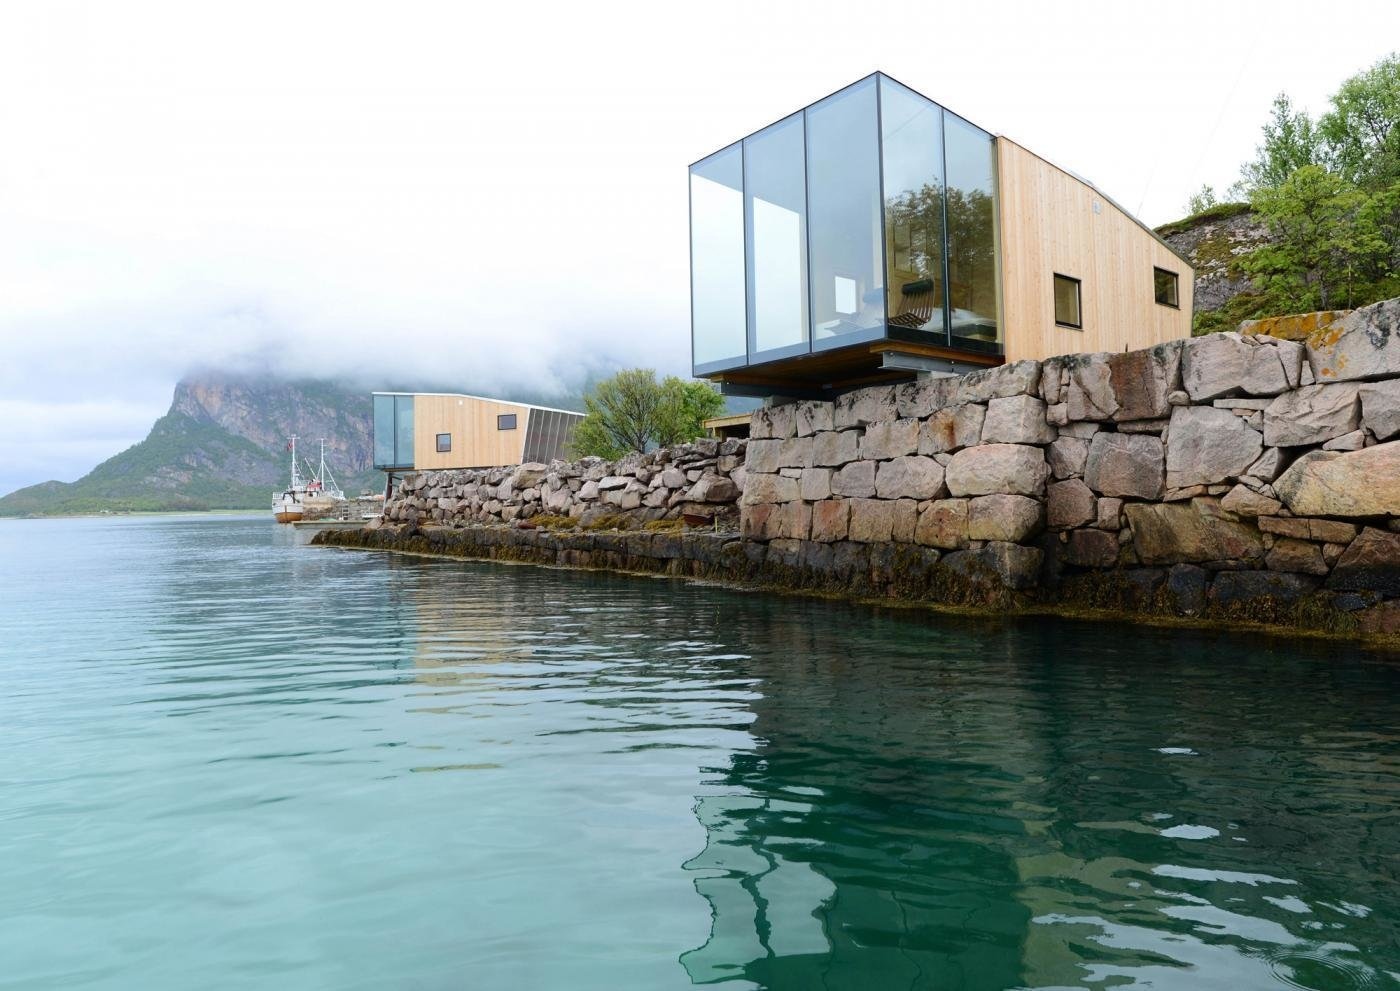 Photo 1 of 8 in Have You Ever Wanted to Stay in a Norwegian Sea Cabin?